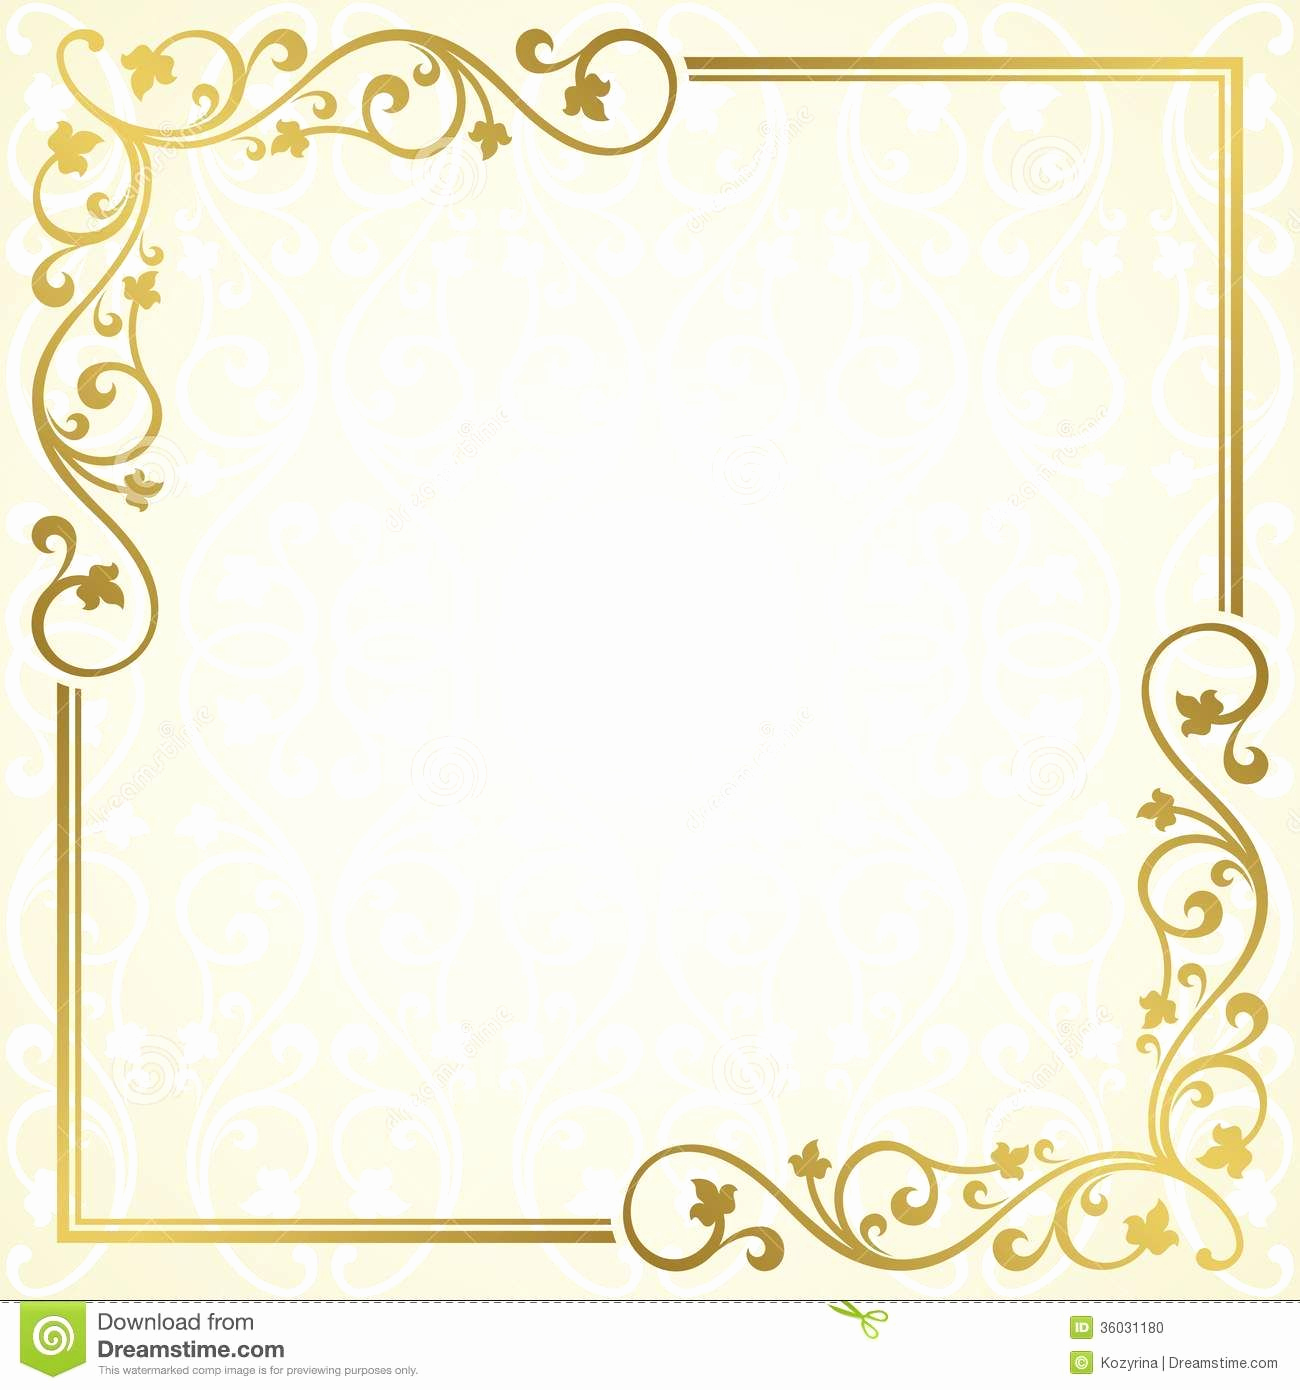 Blank Wedding Invitation Templates Inspirational Best format Invitation Cards Template Magnificent Ideas